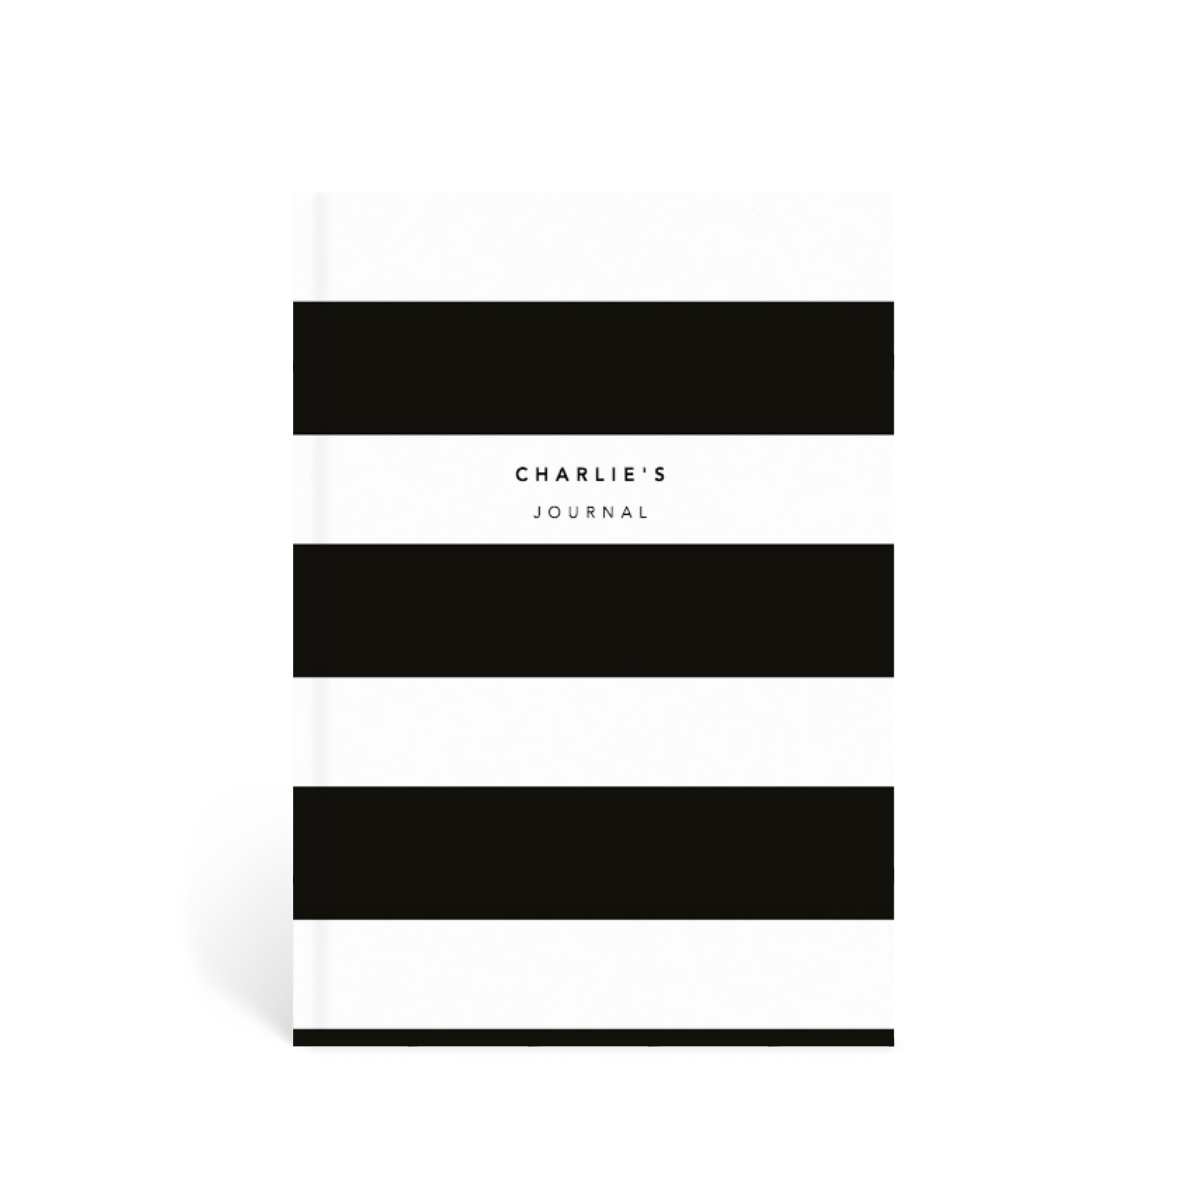 Https%3a%2f%2fwww.papier.com%2fproduct image%2f47972%2f25%2fblack stripe 11756 front 1539095485.png?ixlib=rb 1.1